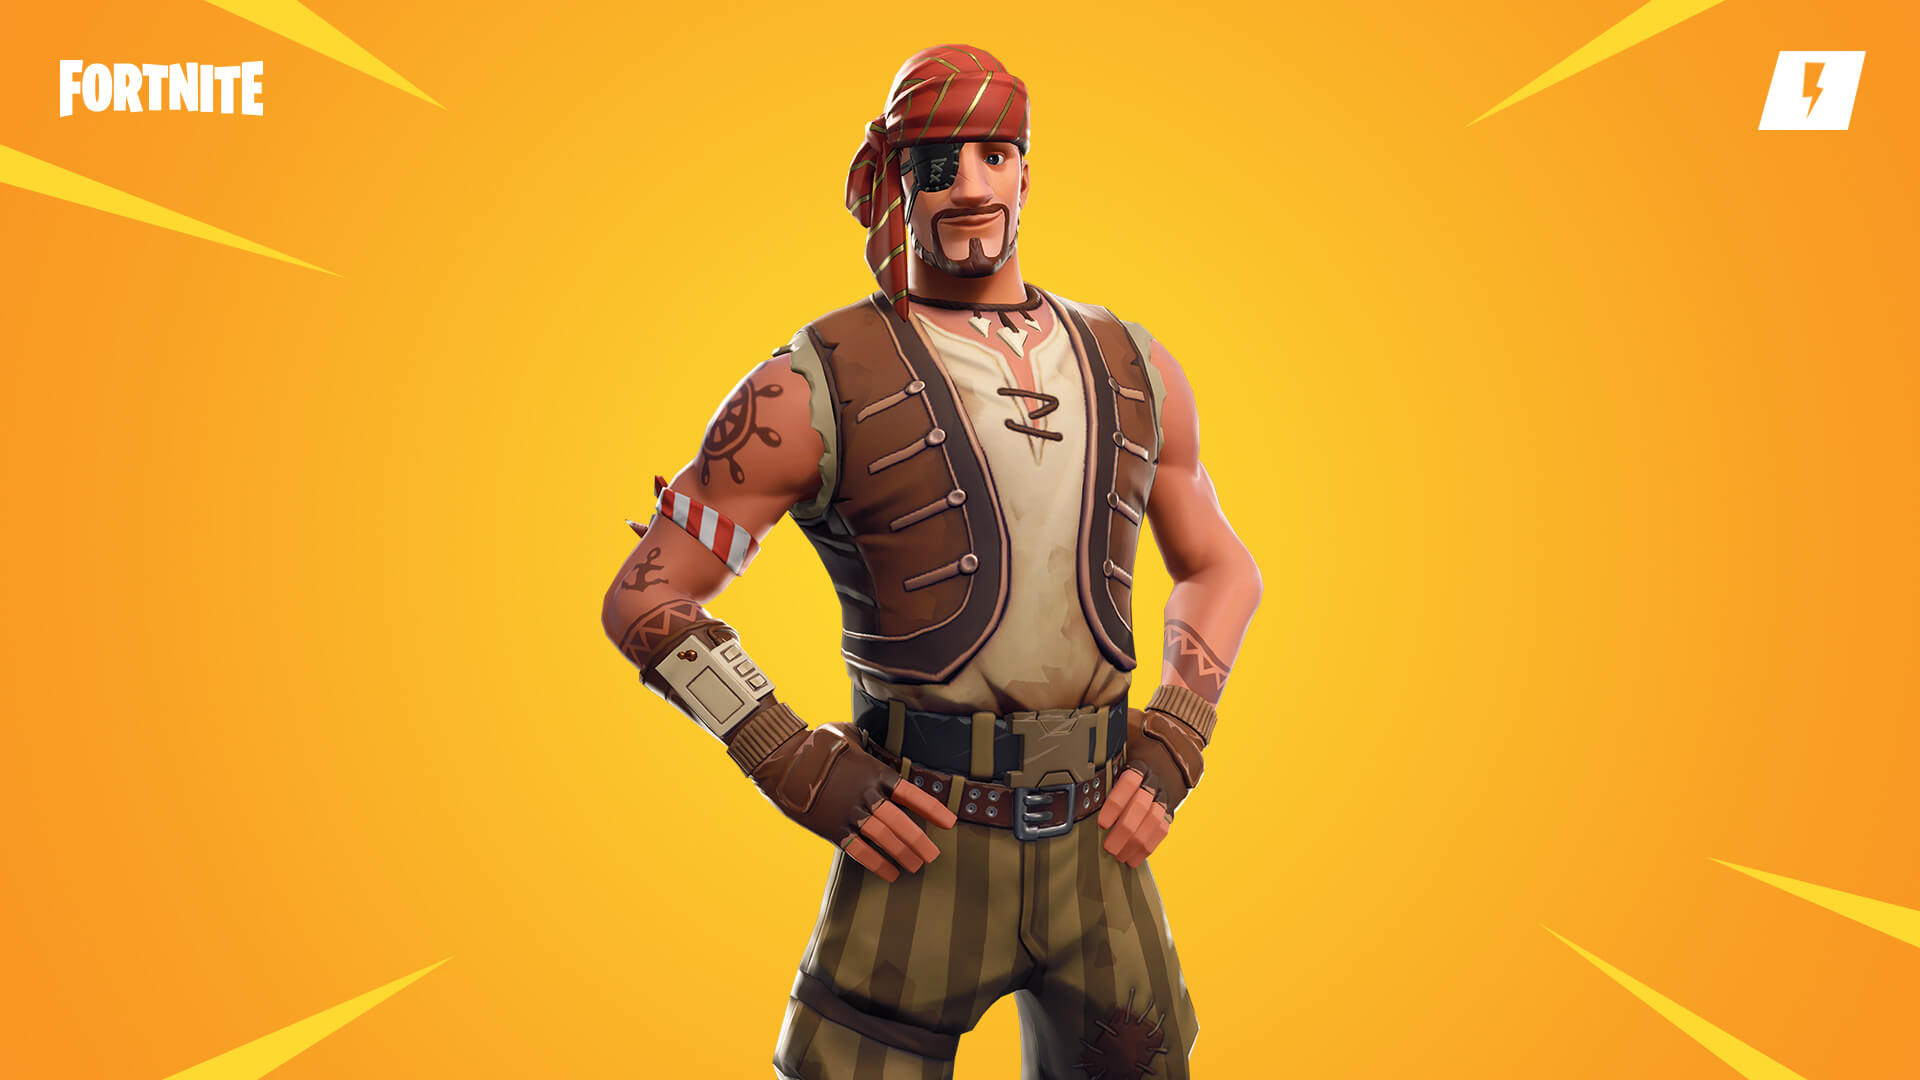 fortnite-Sea-Wolf-Jonesy.jpg.jpg